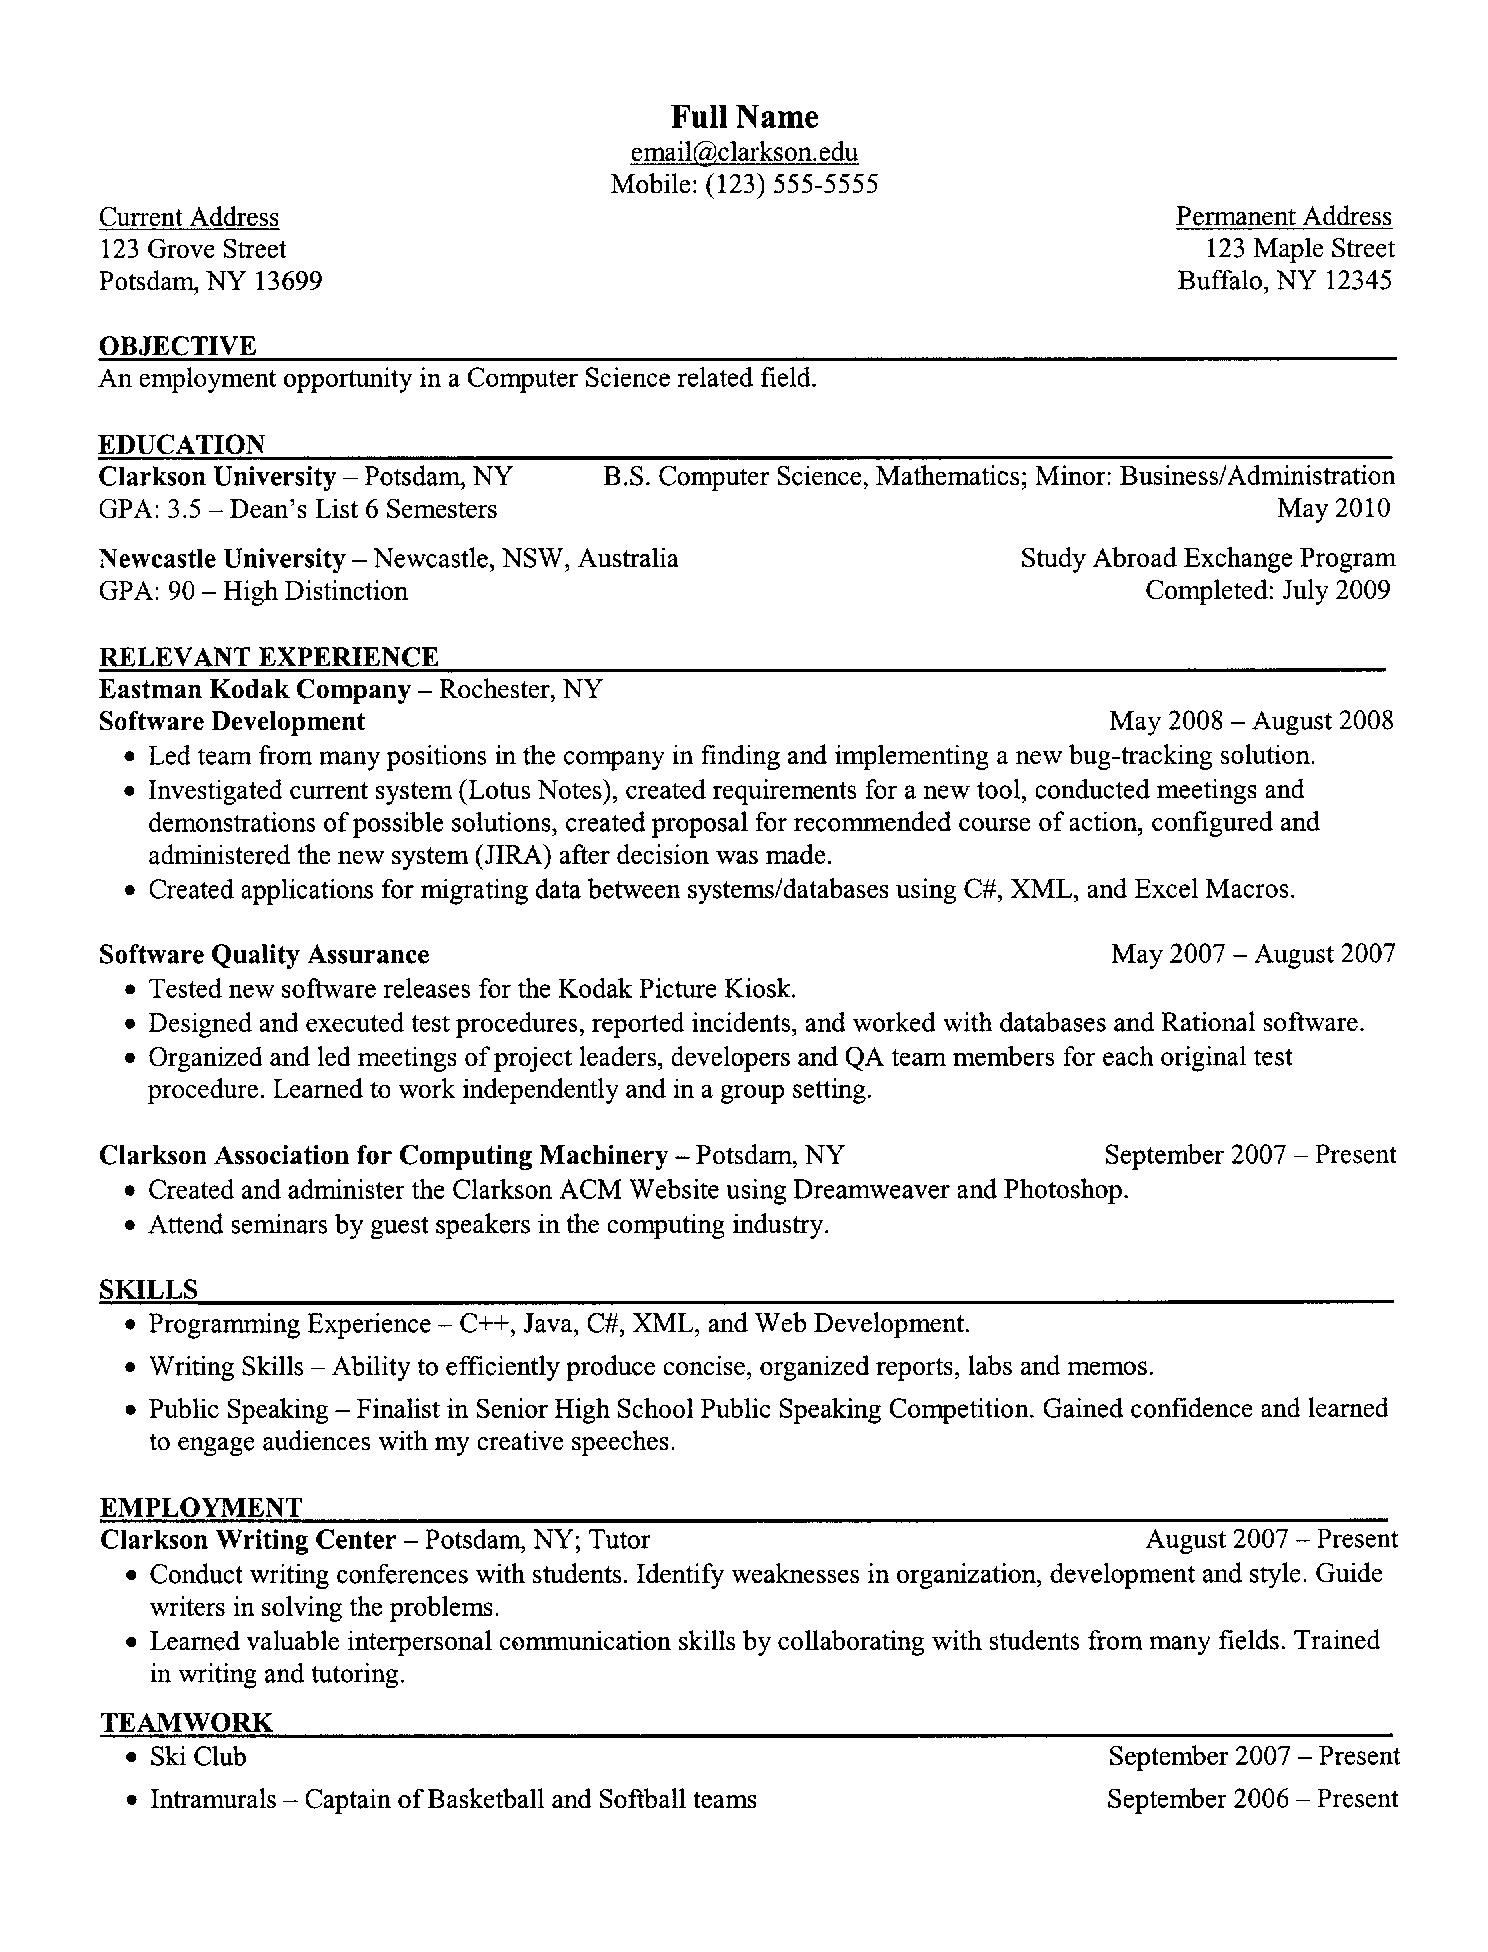 resume survey entry 3 i apologize for the bad spacing in example